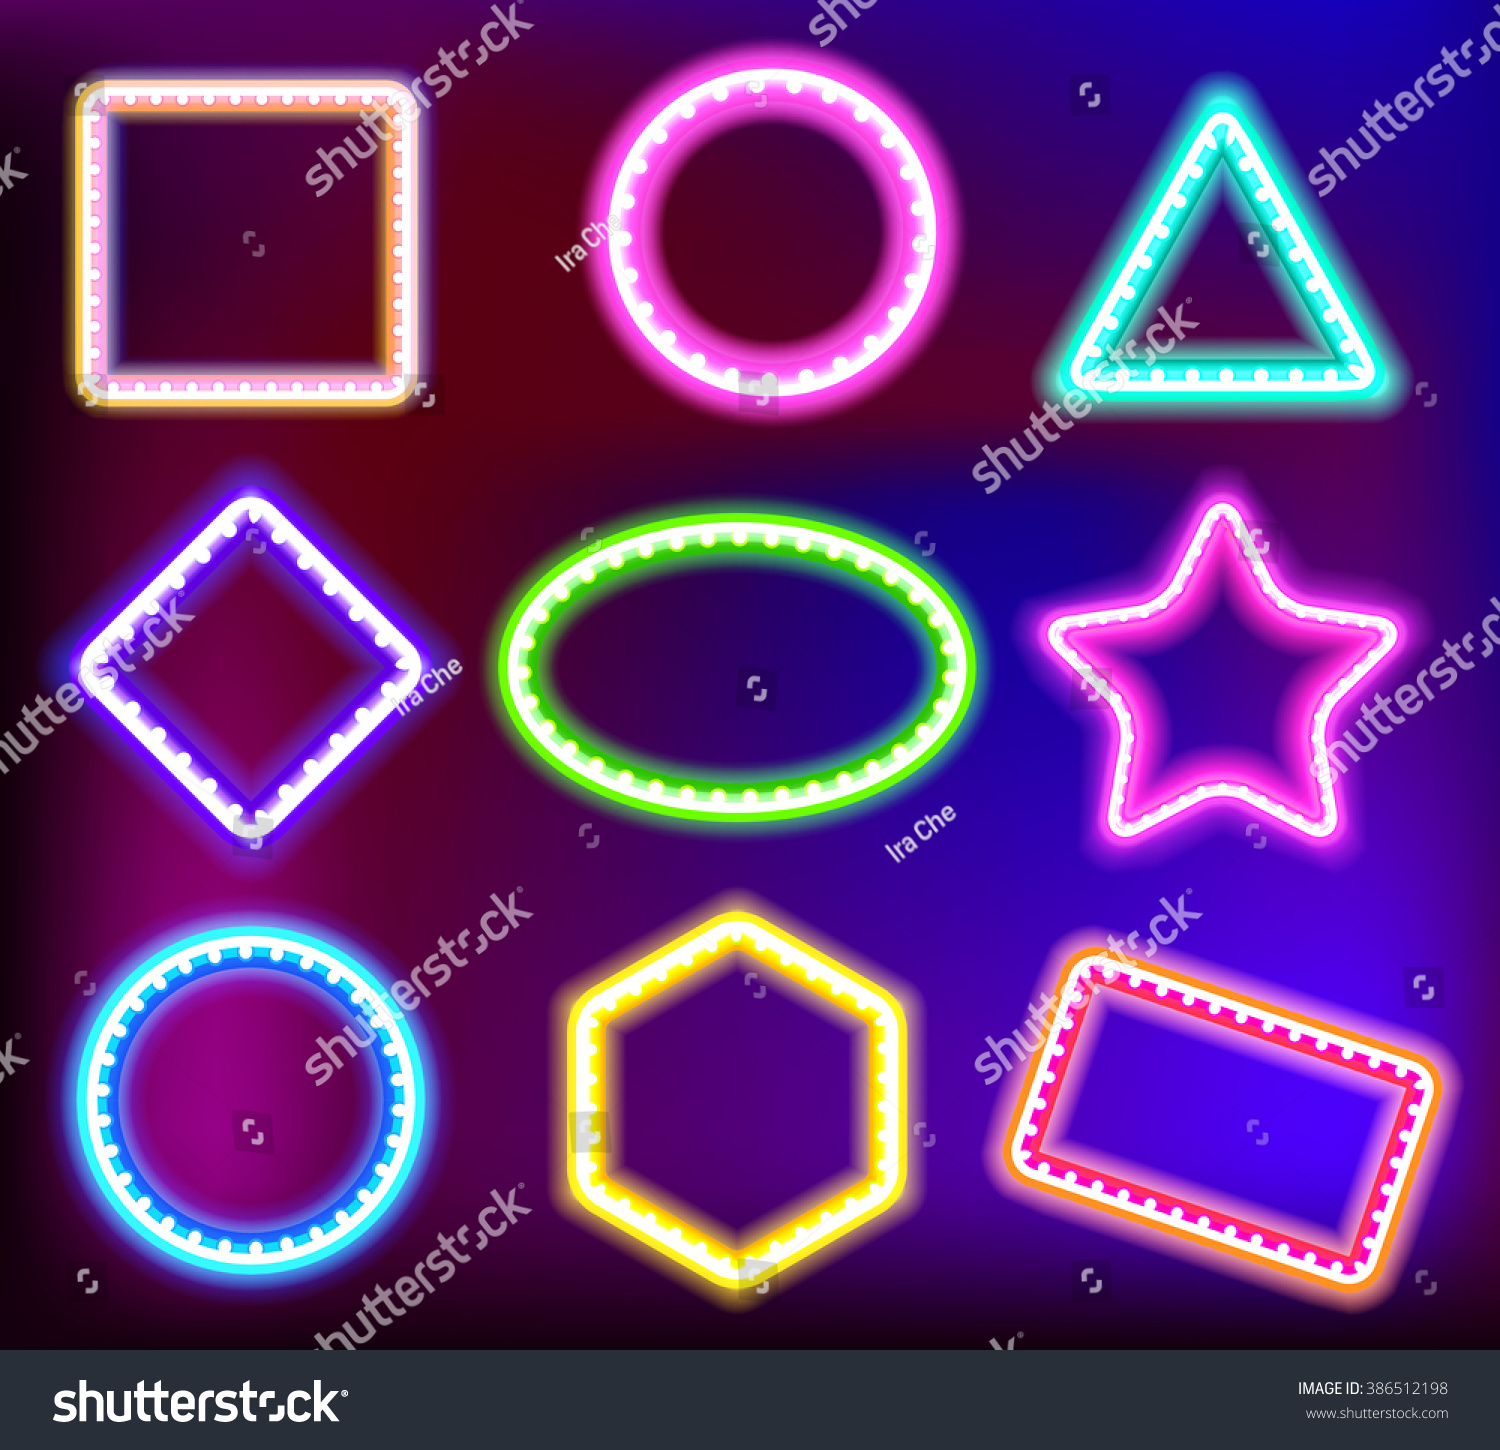 neon framework text neon light form stock vector  neon framework for text neon light in the form of star circle square